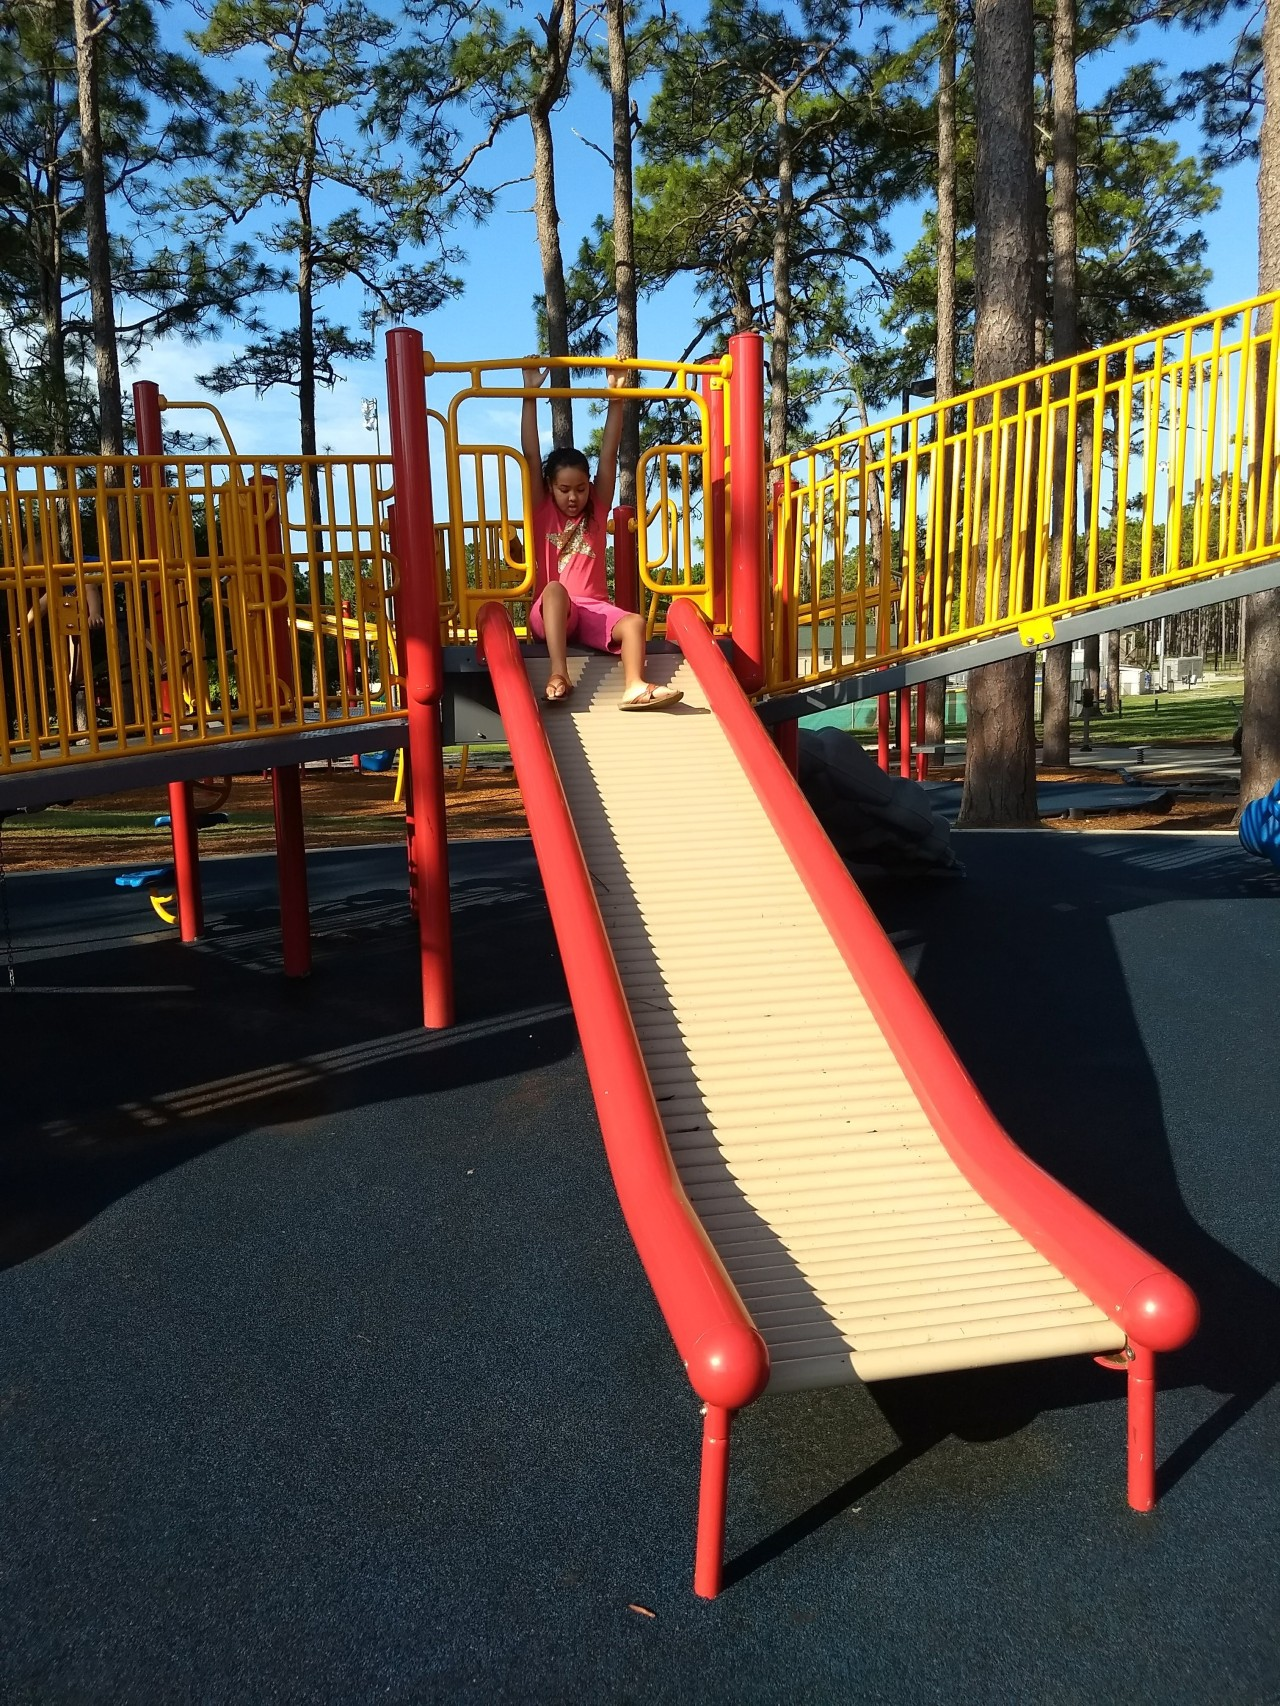 Hugh MacRae Park in Wilmington, NC